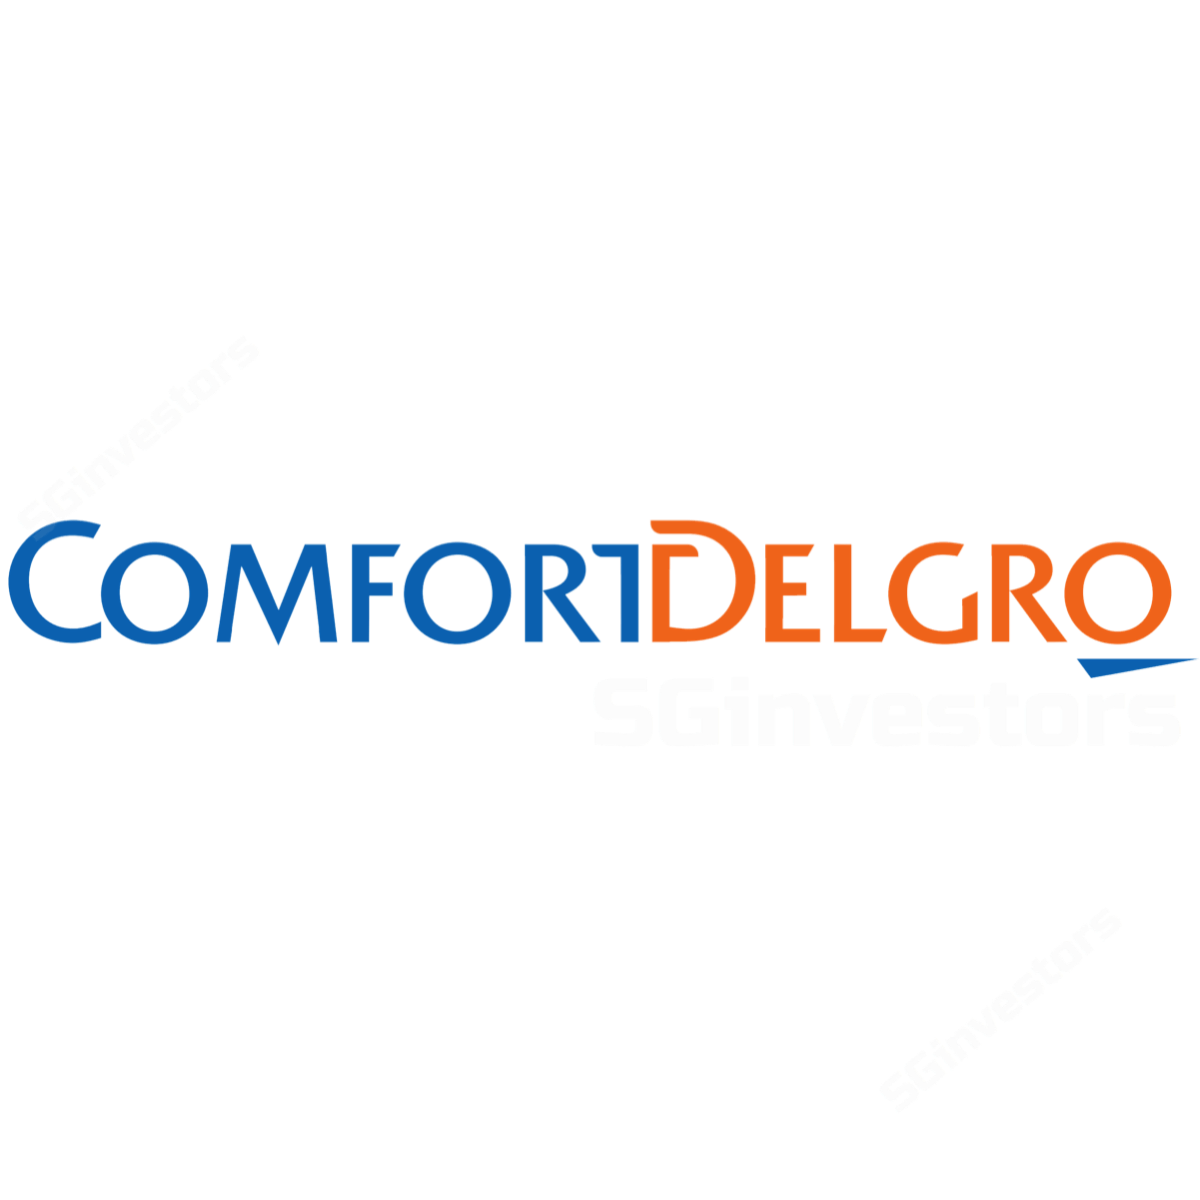 ComfortDelGro Corporation - RHB Invest 2017-07-03: Short-Term Relief From PDVL Implementation